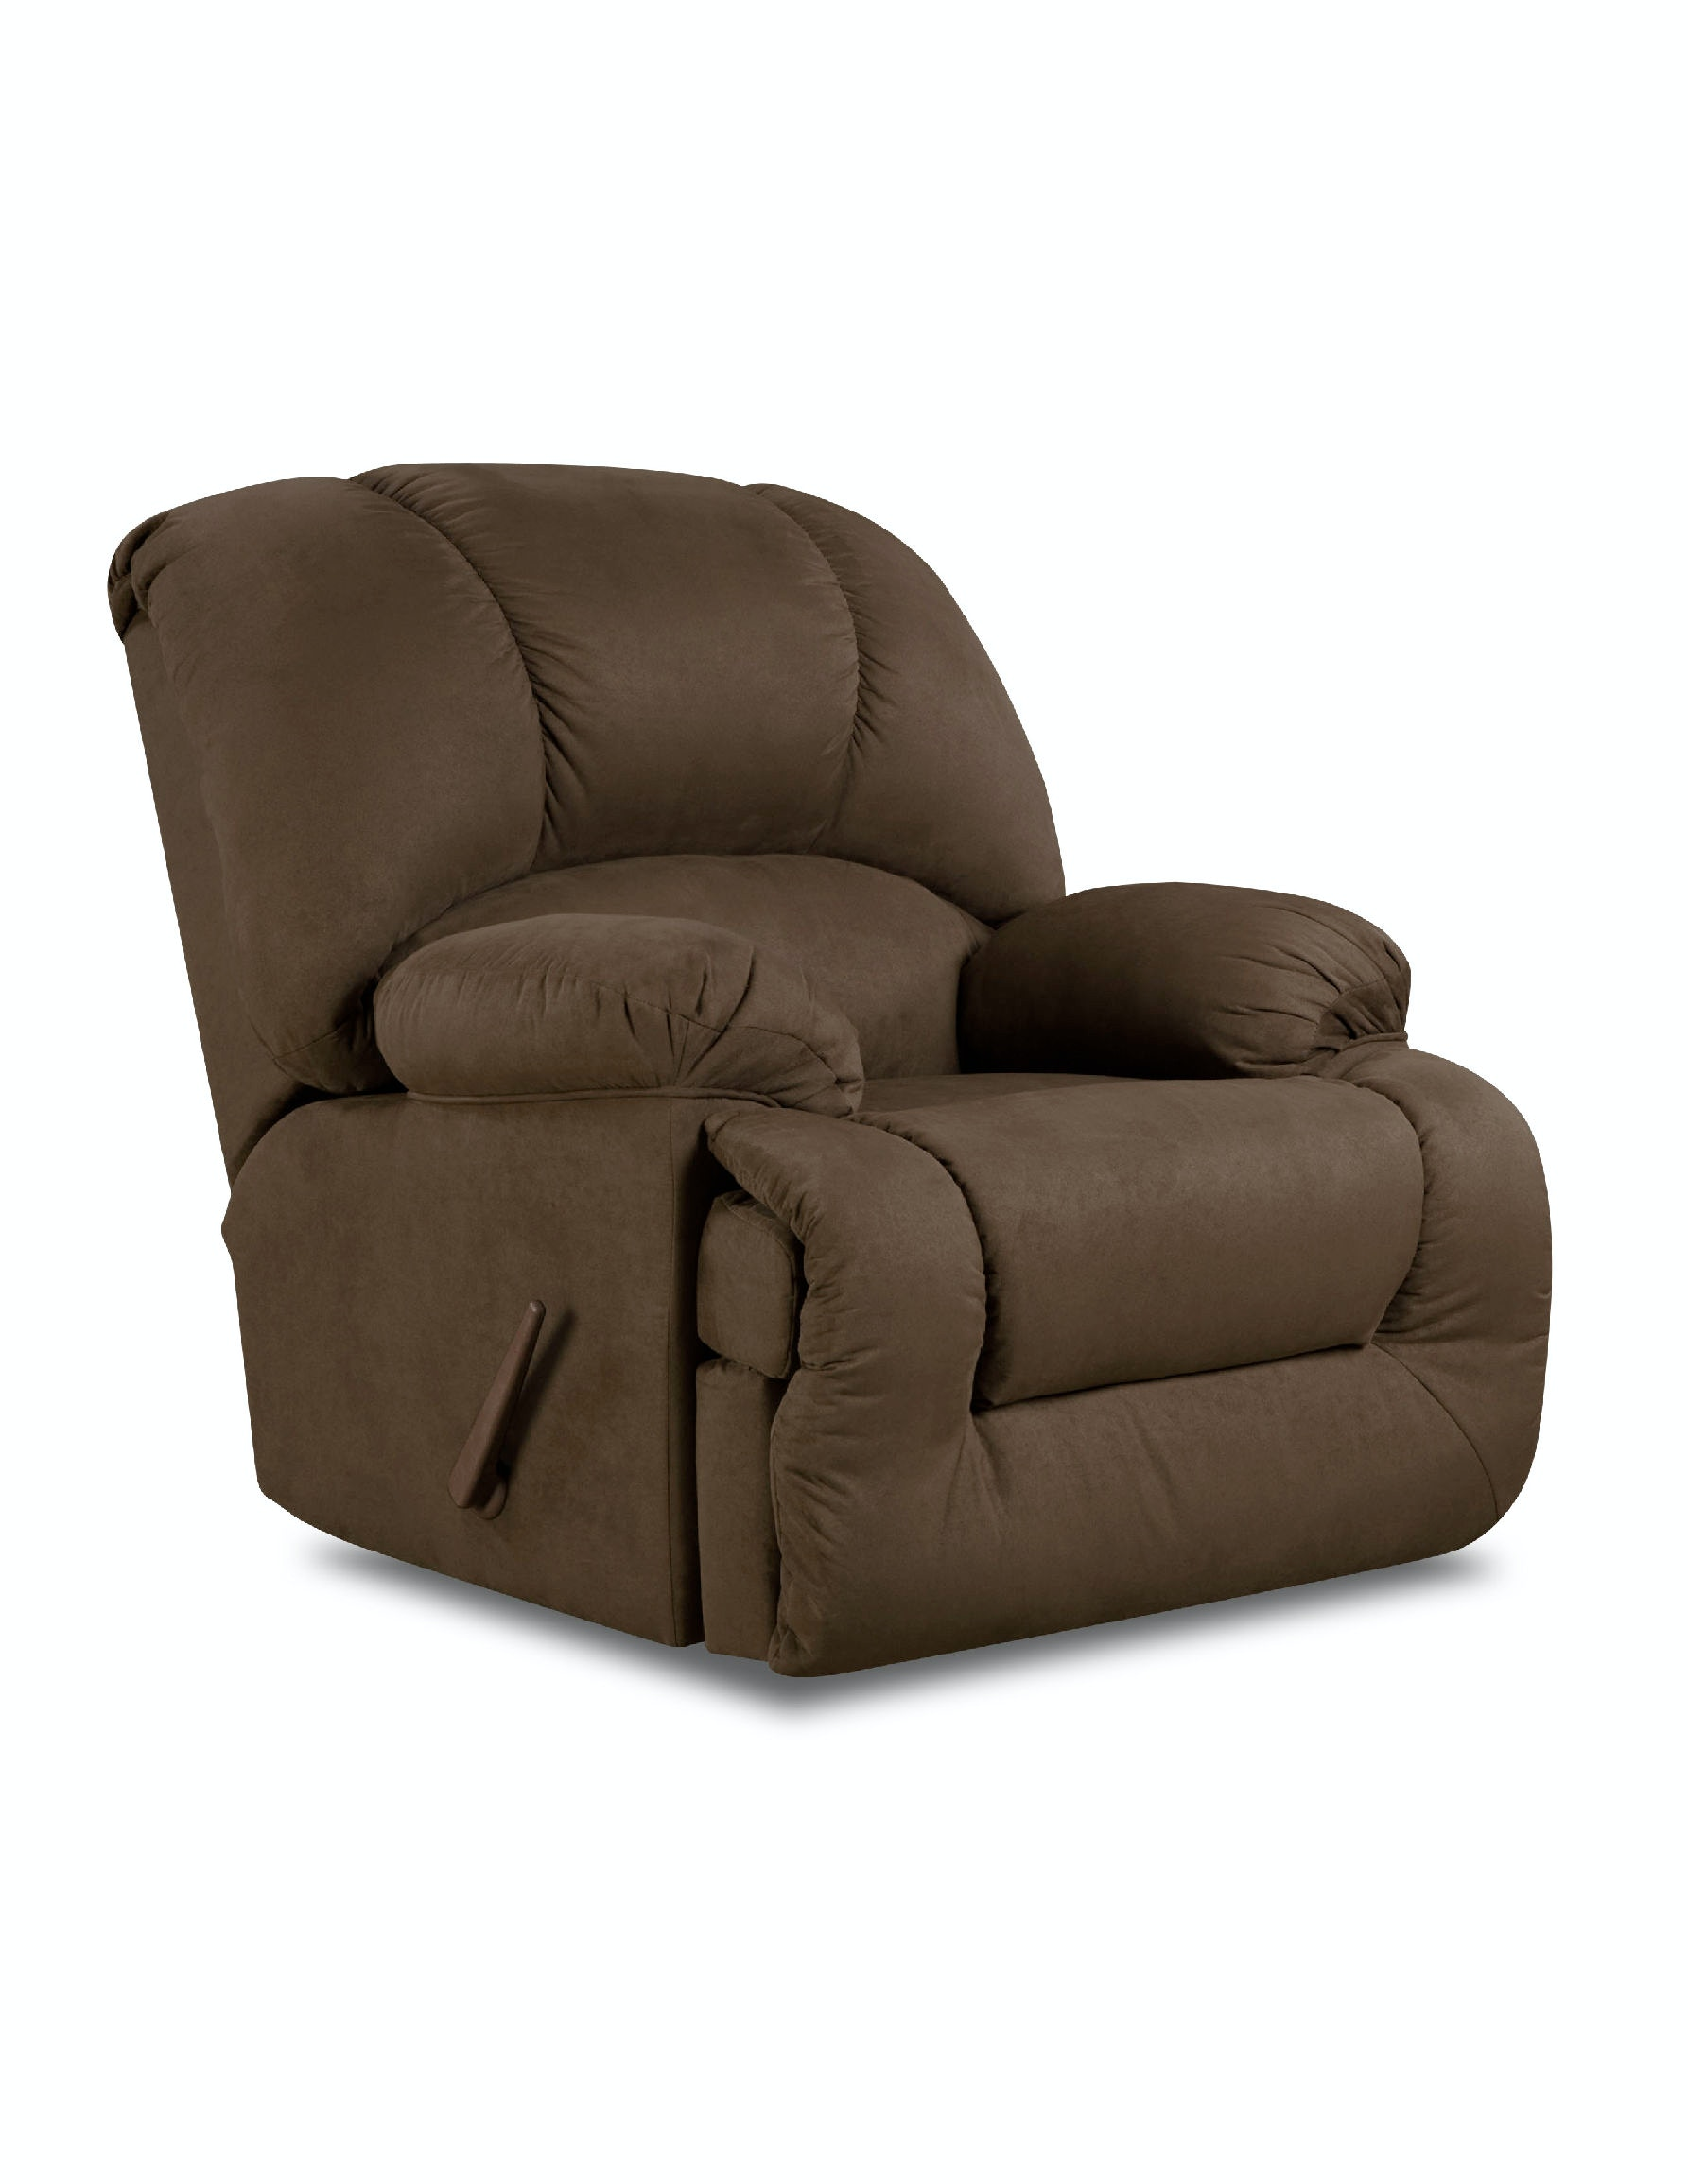 American Furniture Manufacturing Recliner 9700 7901